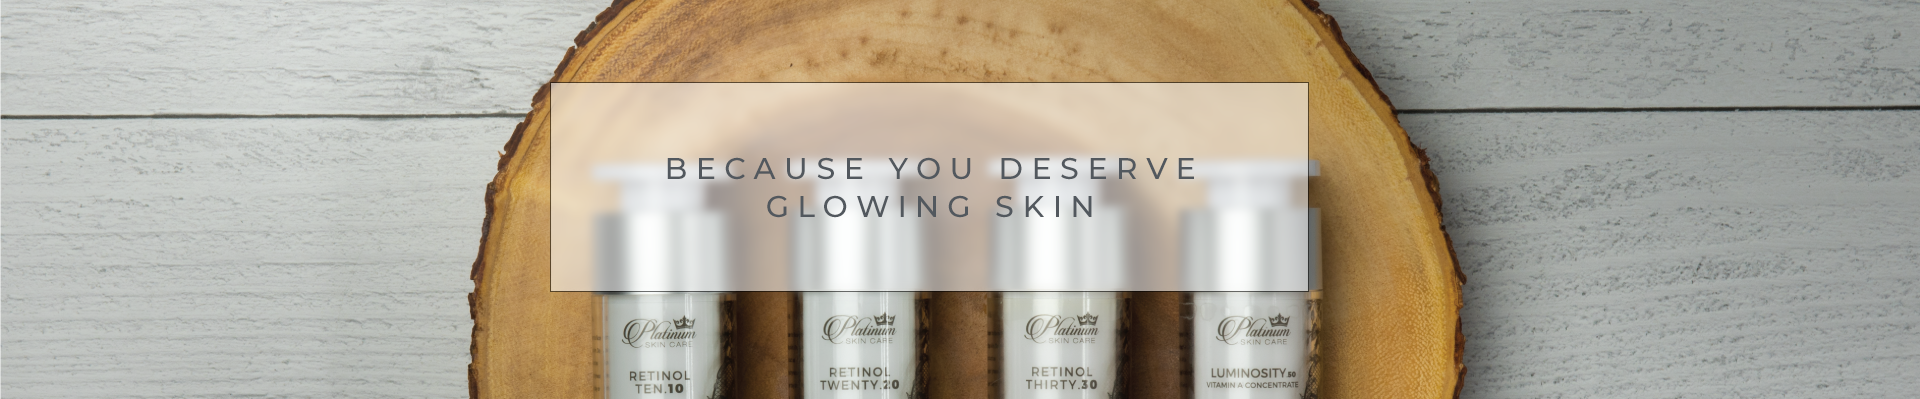 BECAUSE YOU DESERVE GLOWING SKIN